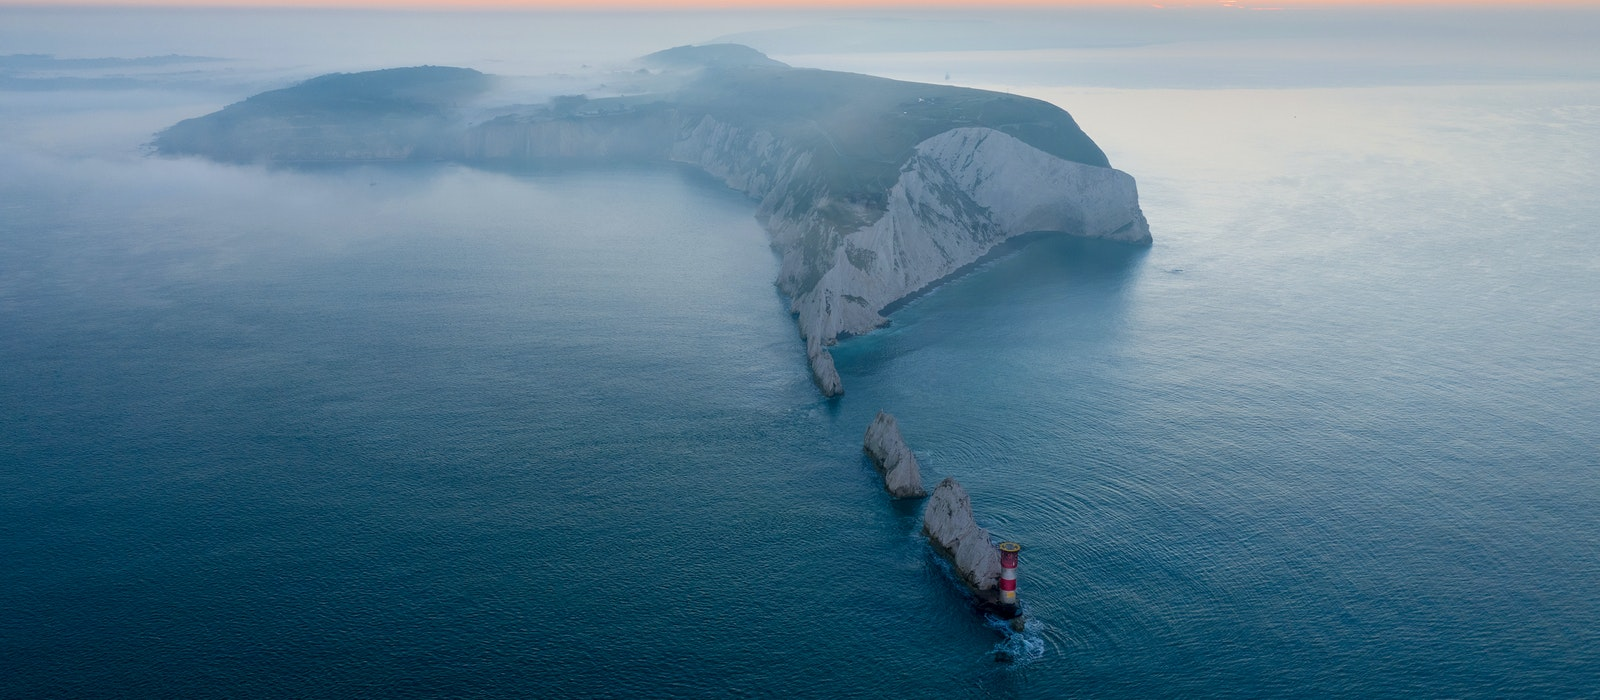 Now a UNESCO-designated Biosphere Reserve: the Isle of Wight and its dramatic chalk coastline